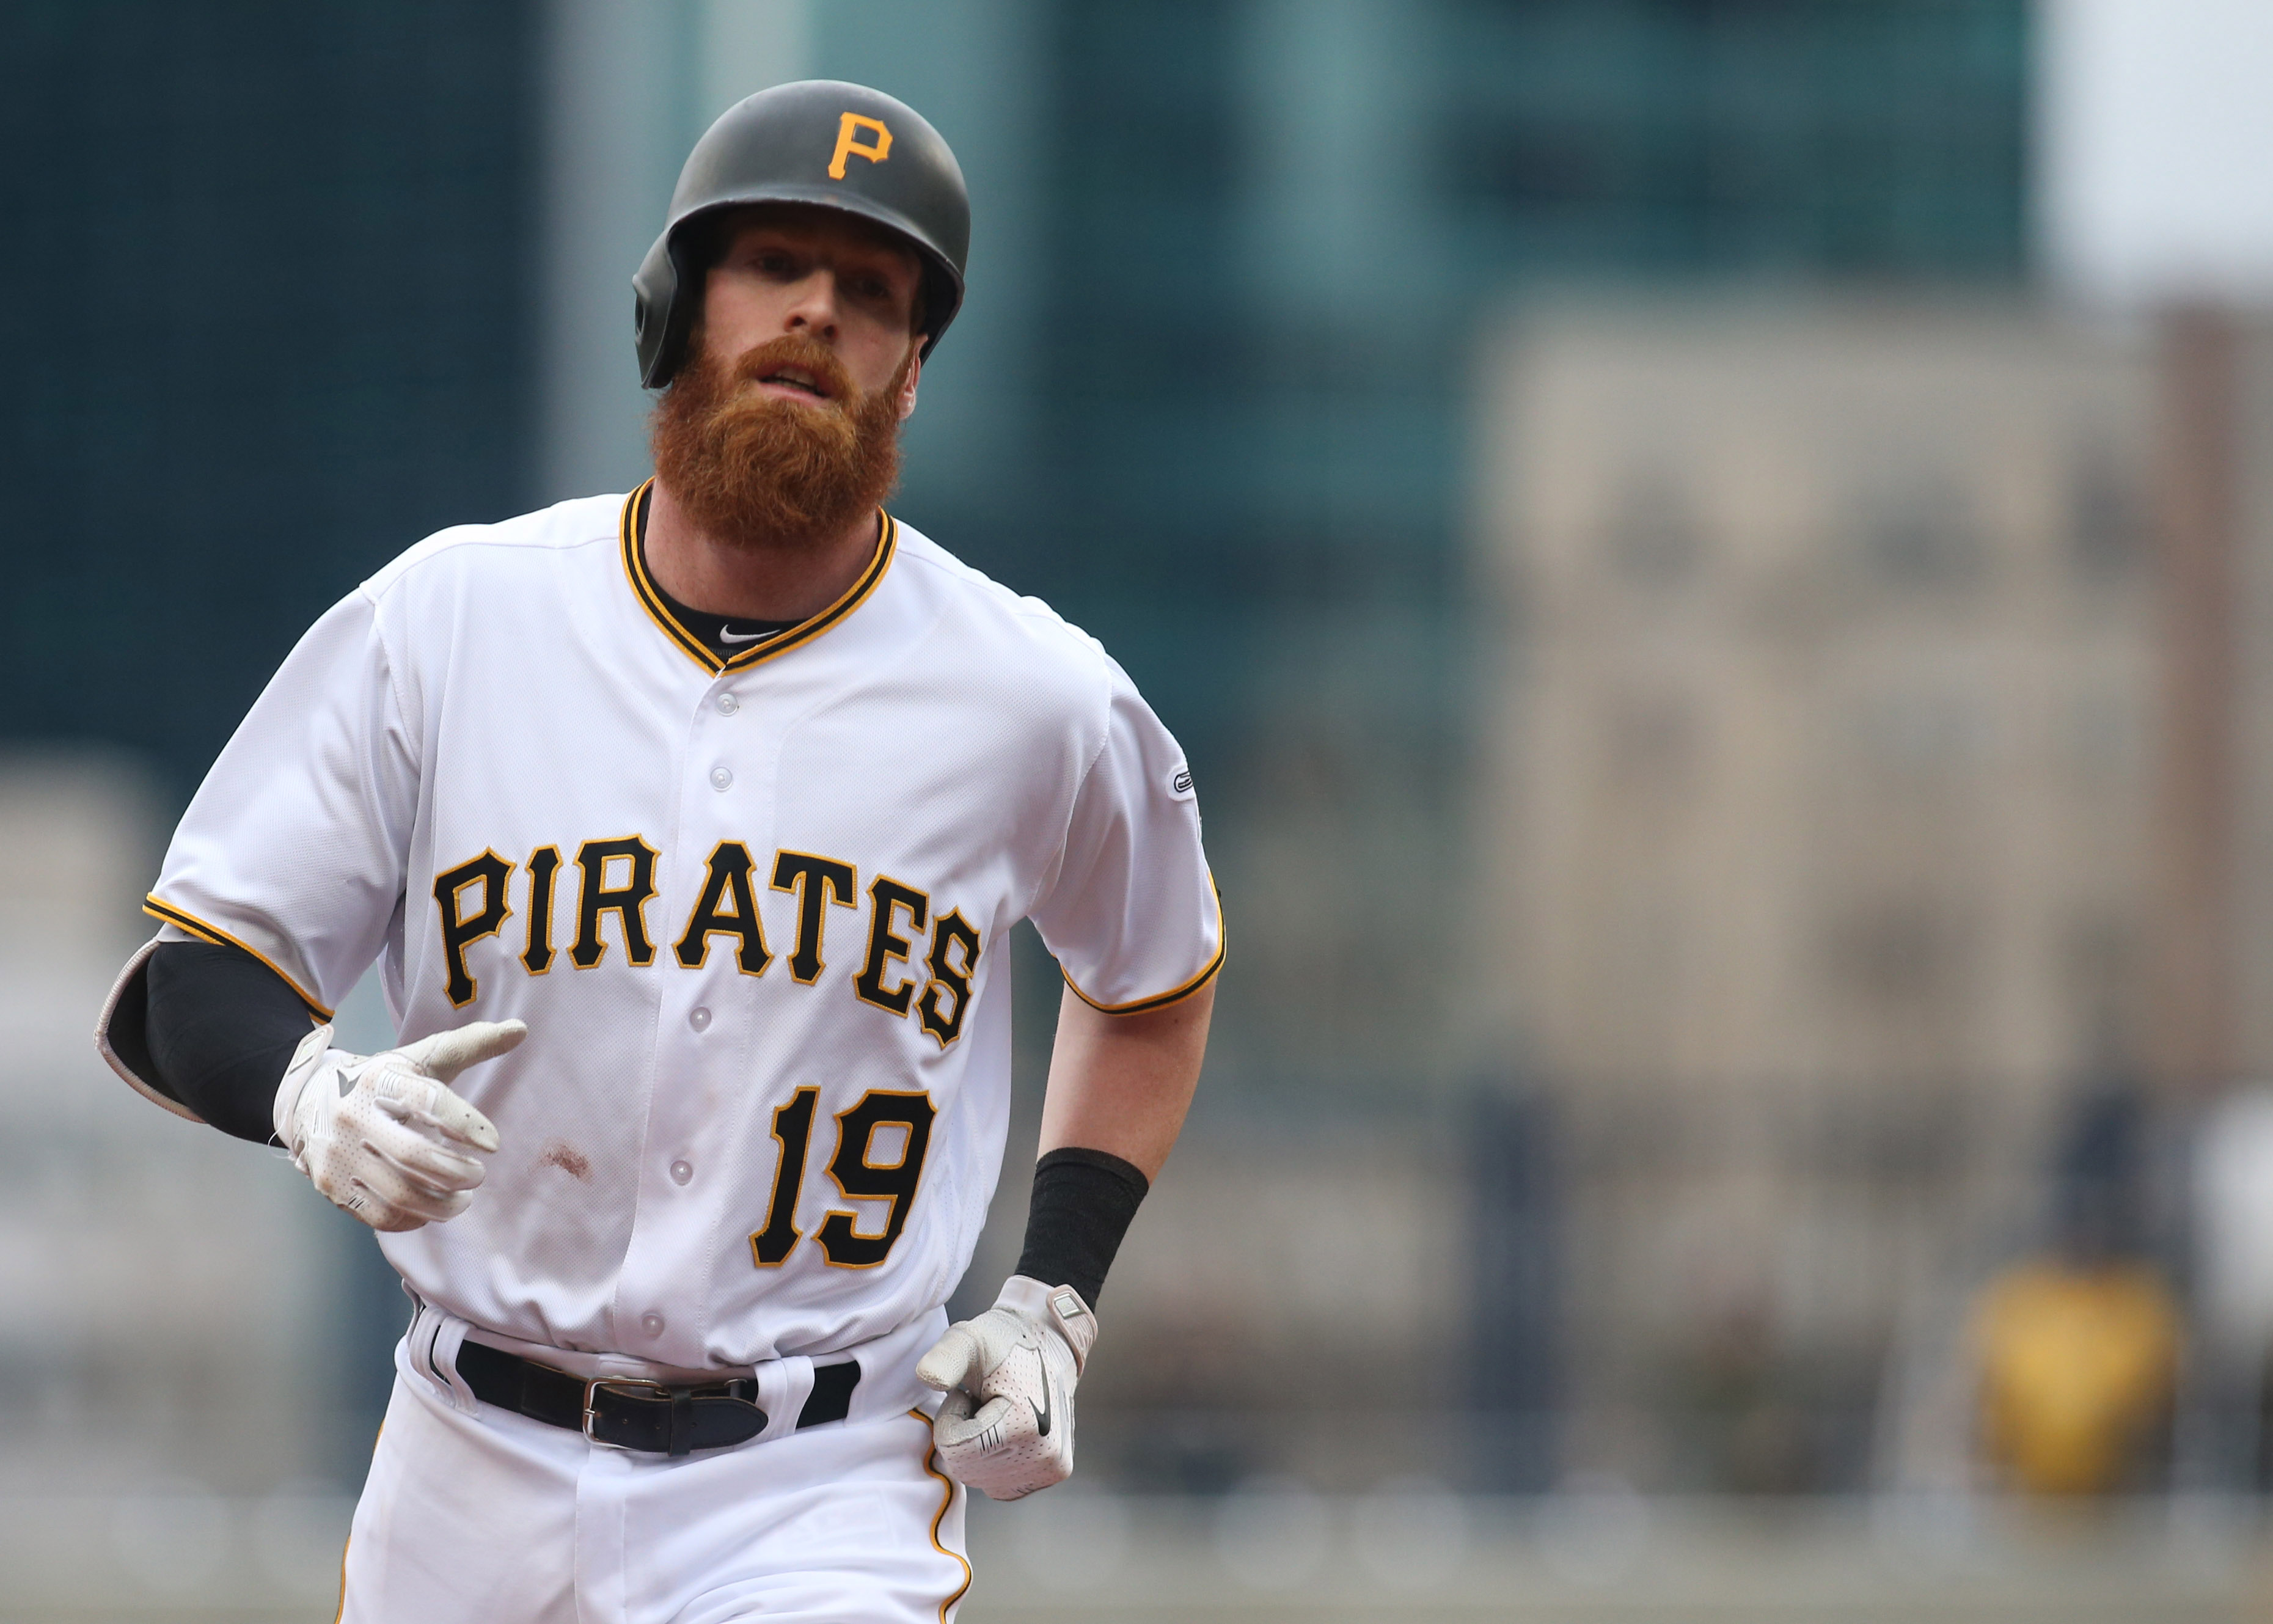 Pittsburgh Pirates 2018 Report Card - Colin Moran